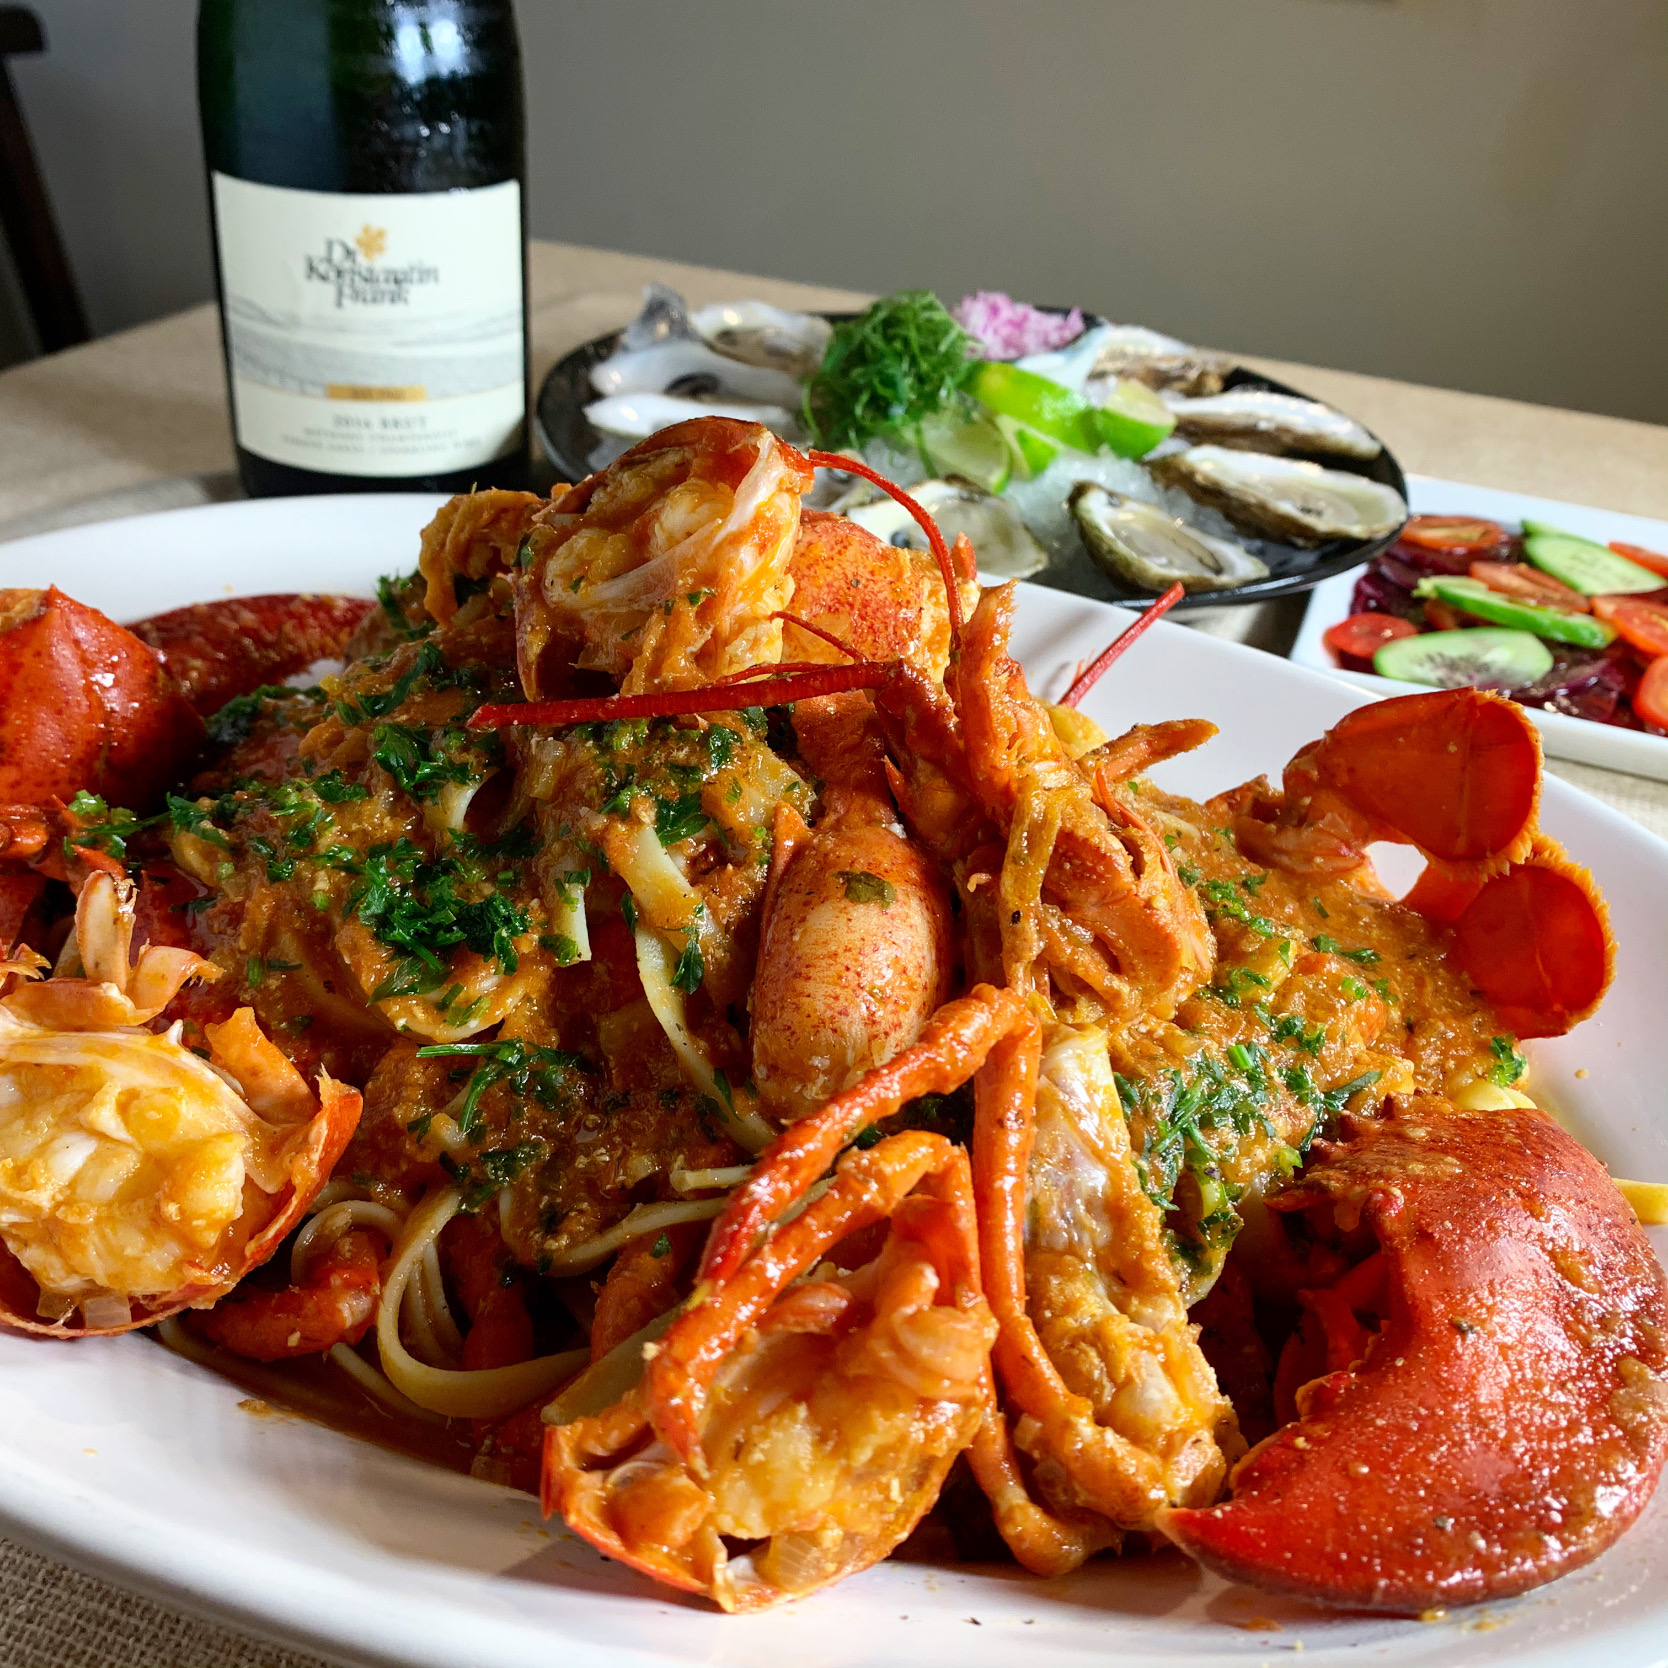 Lobster Fettuccine with Creamy Tomato Sauce (丸ごとロブスターのフェットチーネ、クリーミートマトソース)